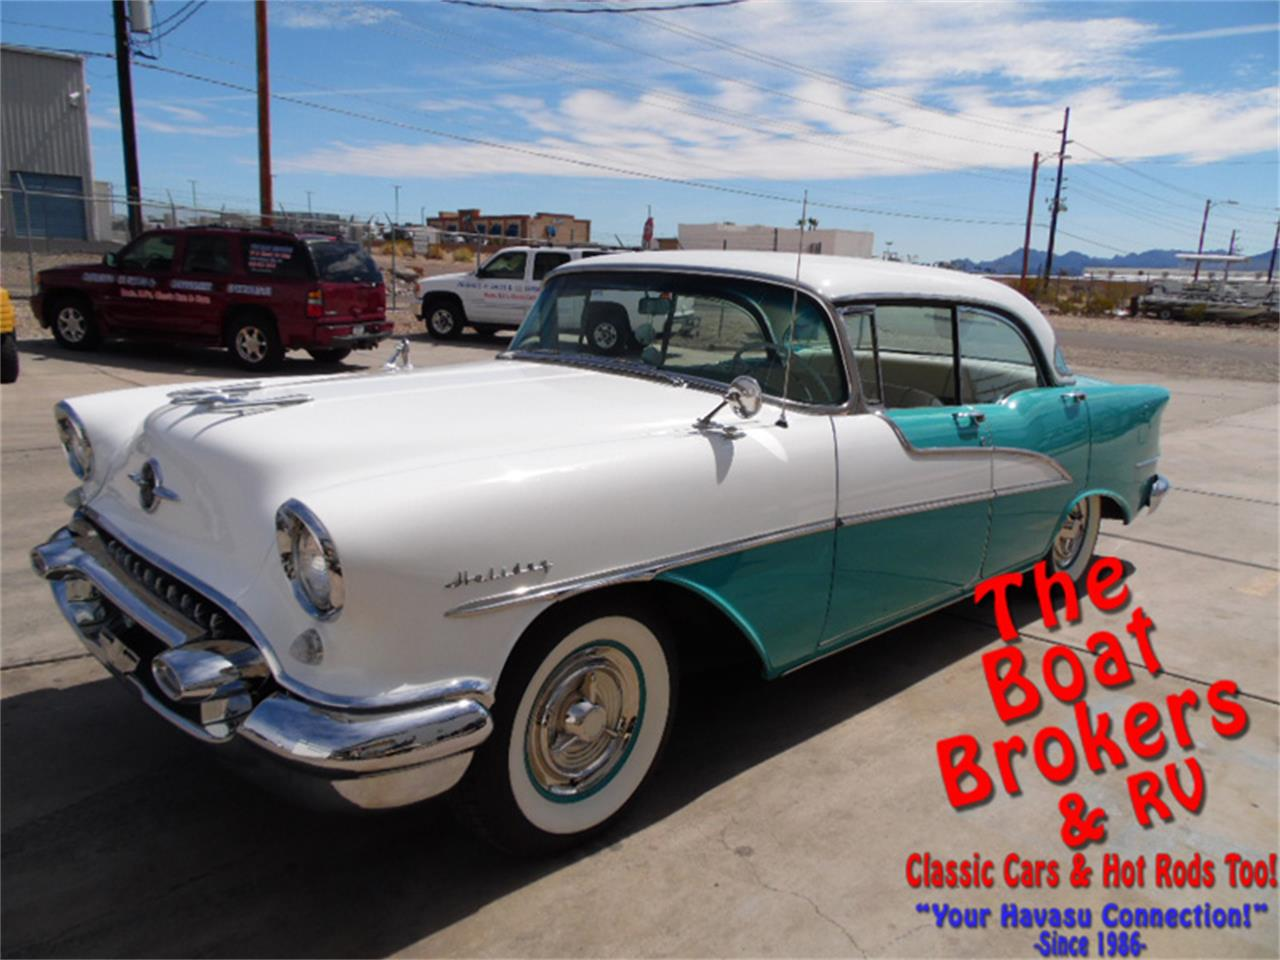 Large Picture of '55 Oldsmobile Holiday Rocket 88 located in Lake Havasu Arizona Offered by The Boat Brokers - N2PY